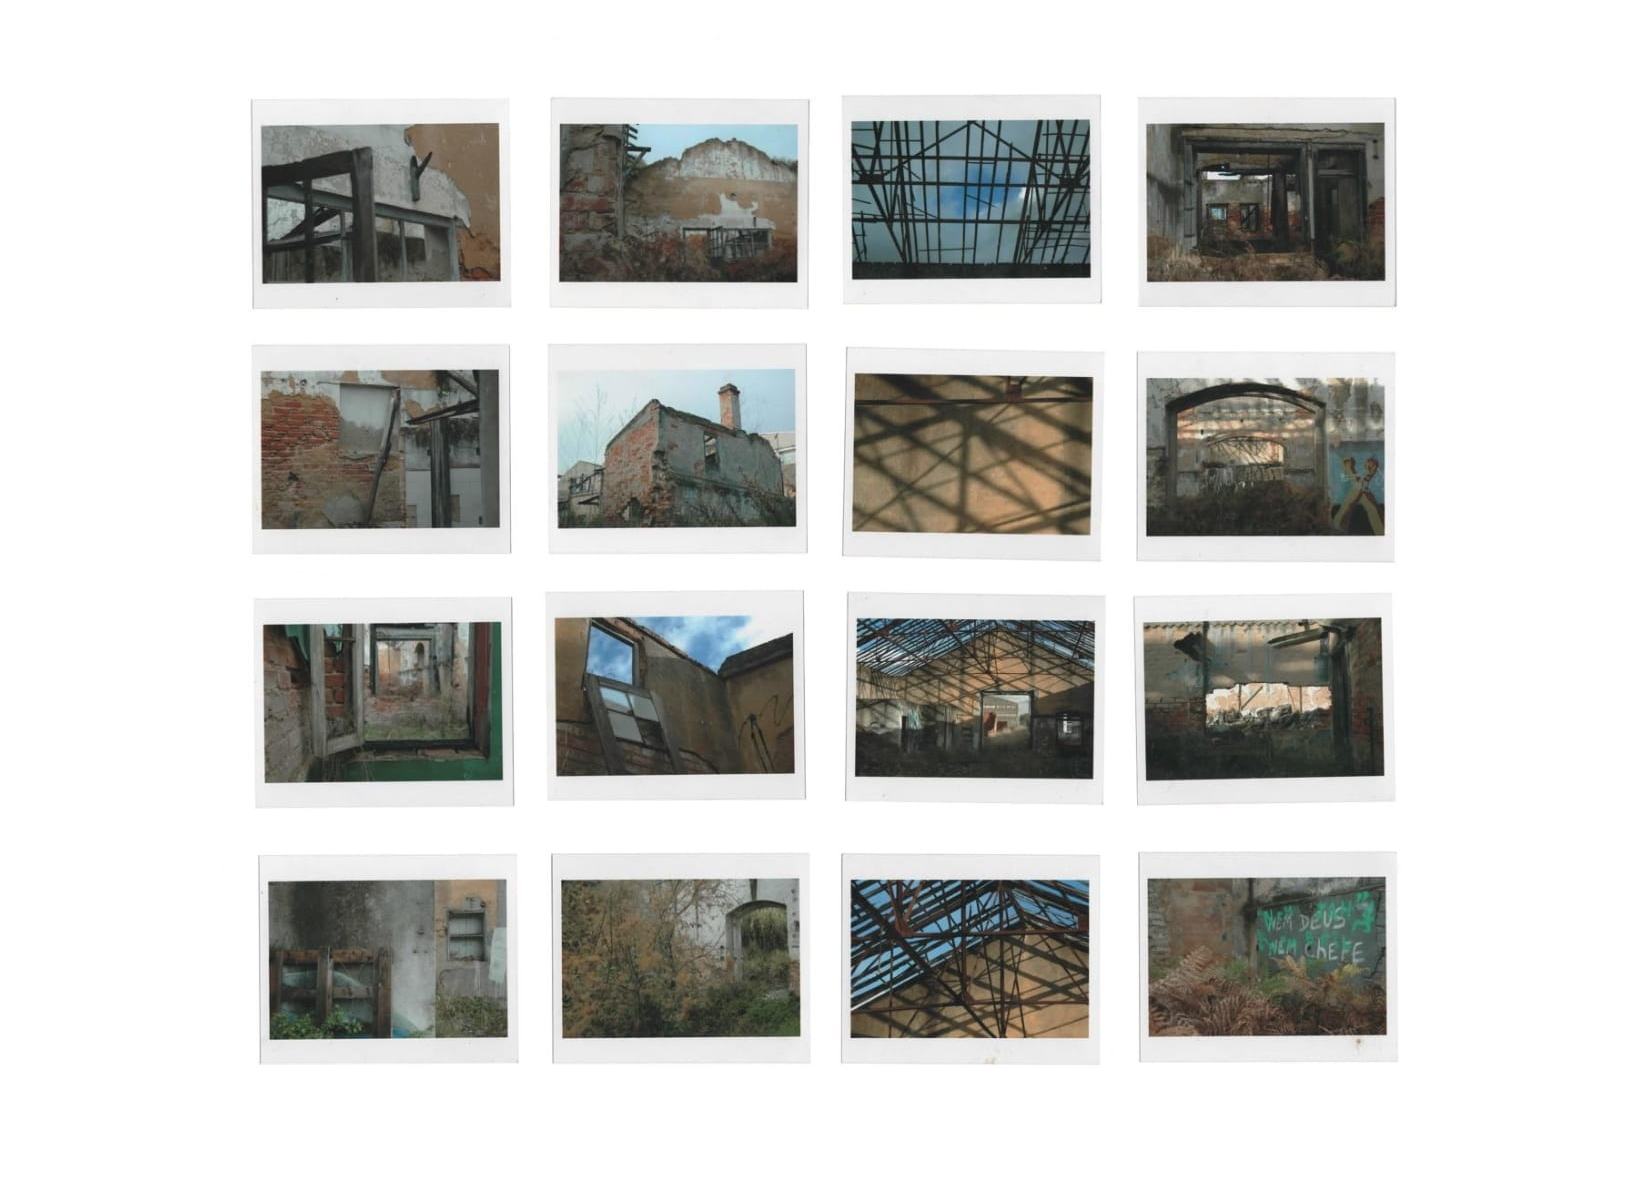 ENTROPY  Photographic investigation of abandoned spaces hidden in the center of Lisbon and awaiting demolition. An orderly documentation of disorder balanced by any system and contained in the inherited spaces of identity.  These spaces don't exist anymore.